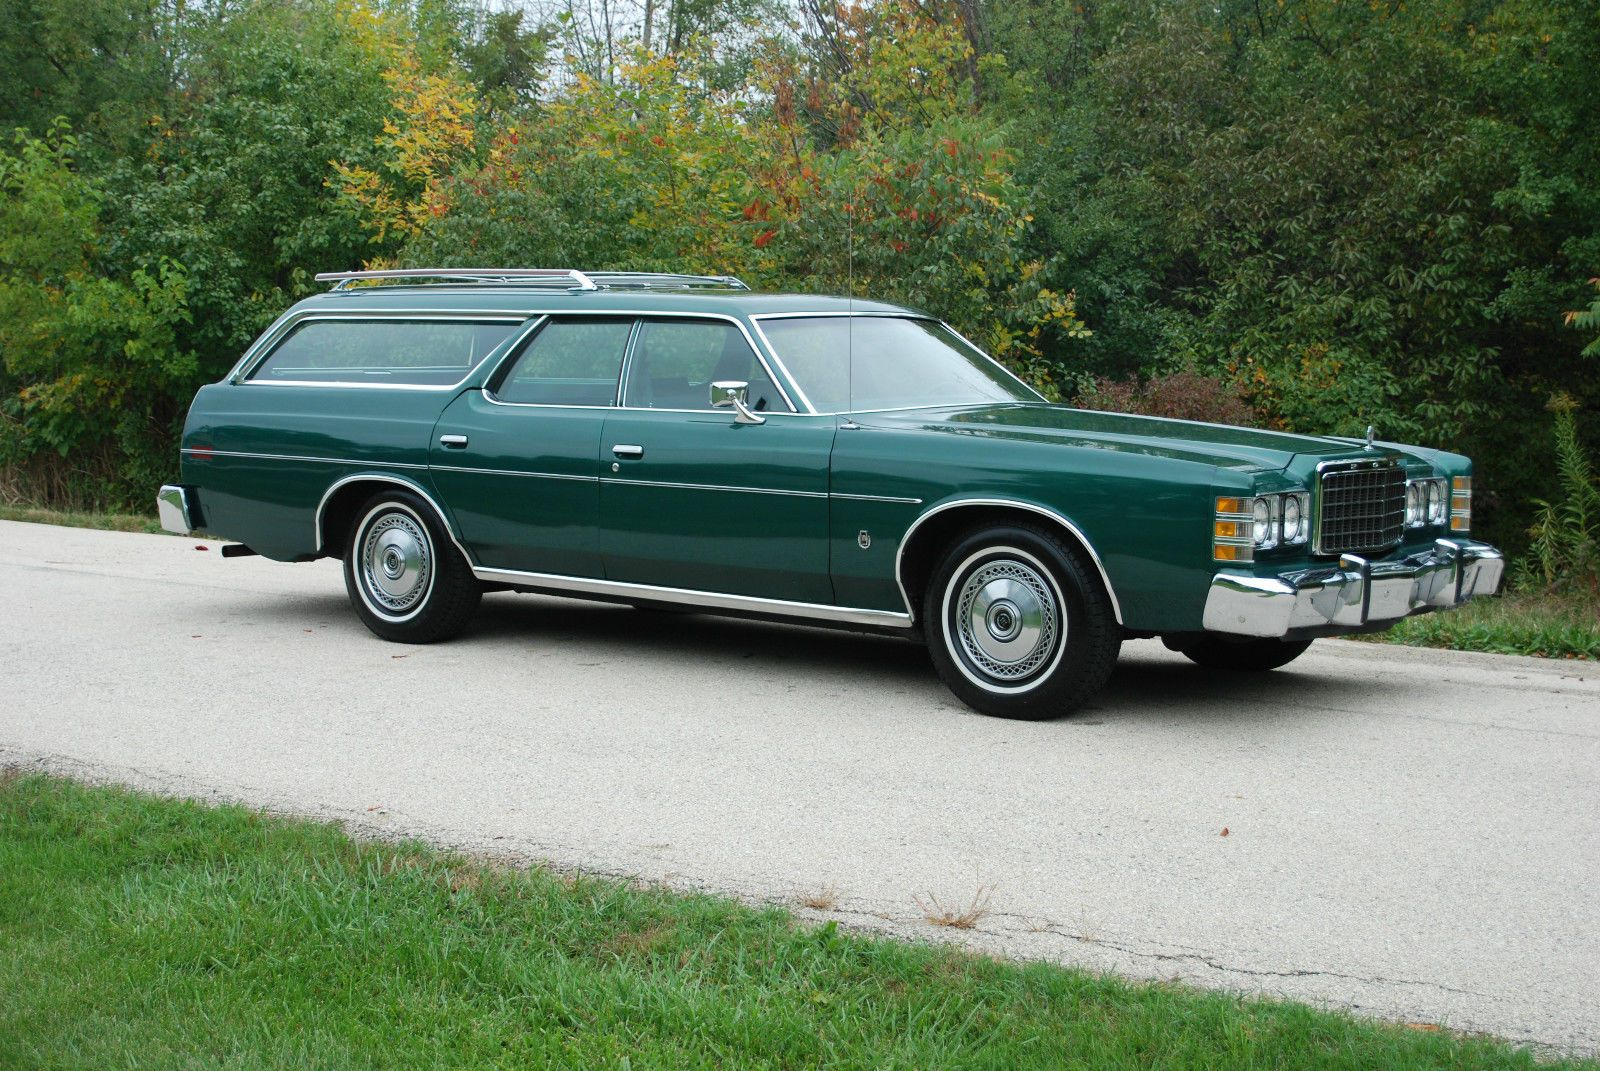 1978 ford ltd wagon with 67k original miles and in original dark jade metallic paint a real beauty